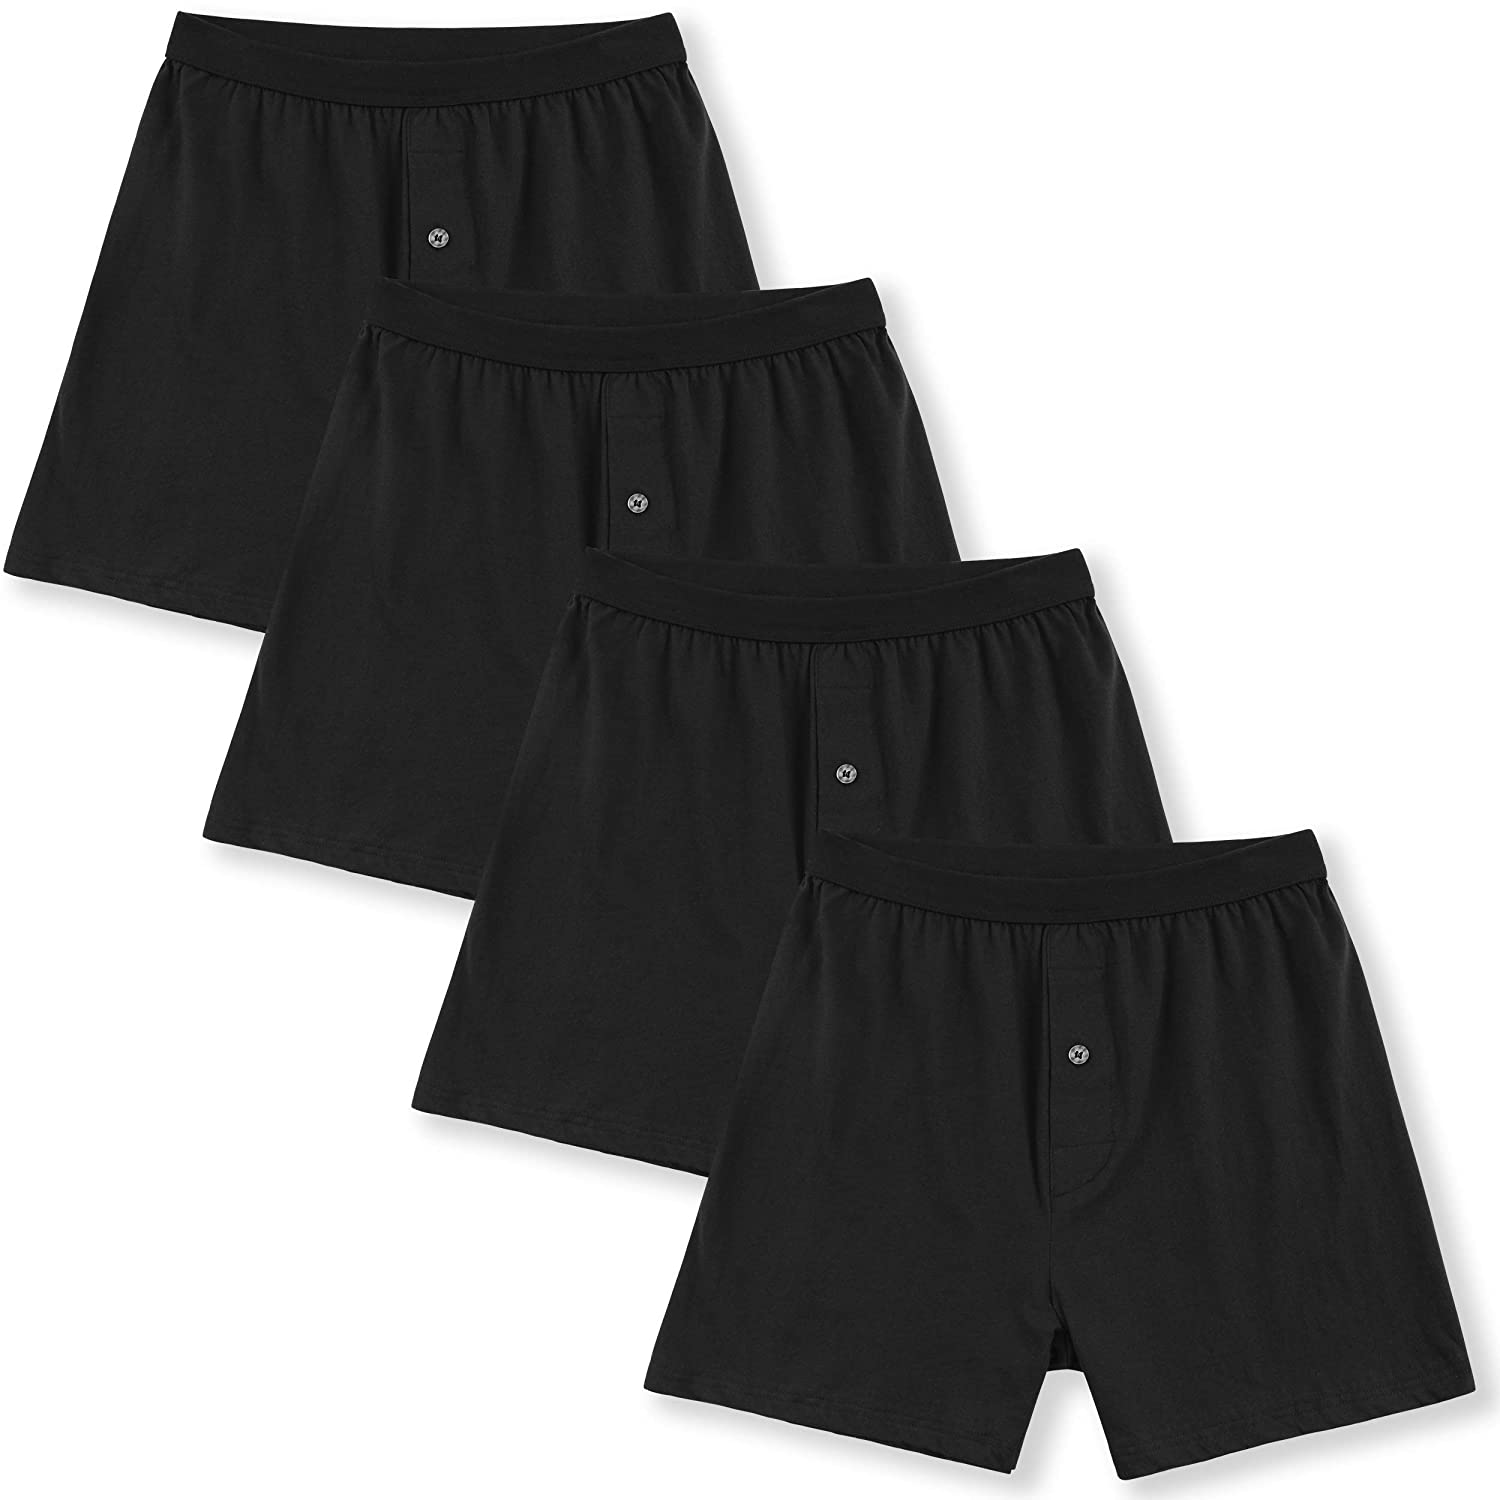 Innersy Mens Boxers 4 Pack Ultimate Soft All Cotton Knit Boxers Shorts Underwear